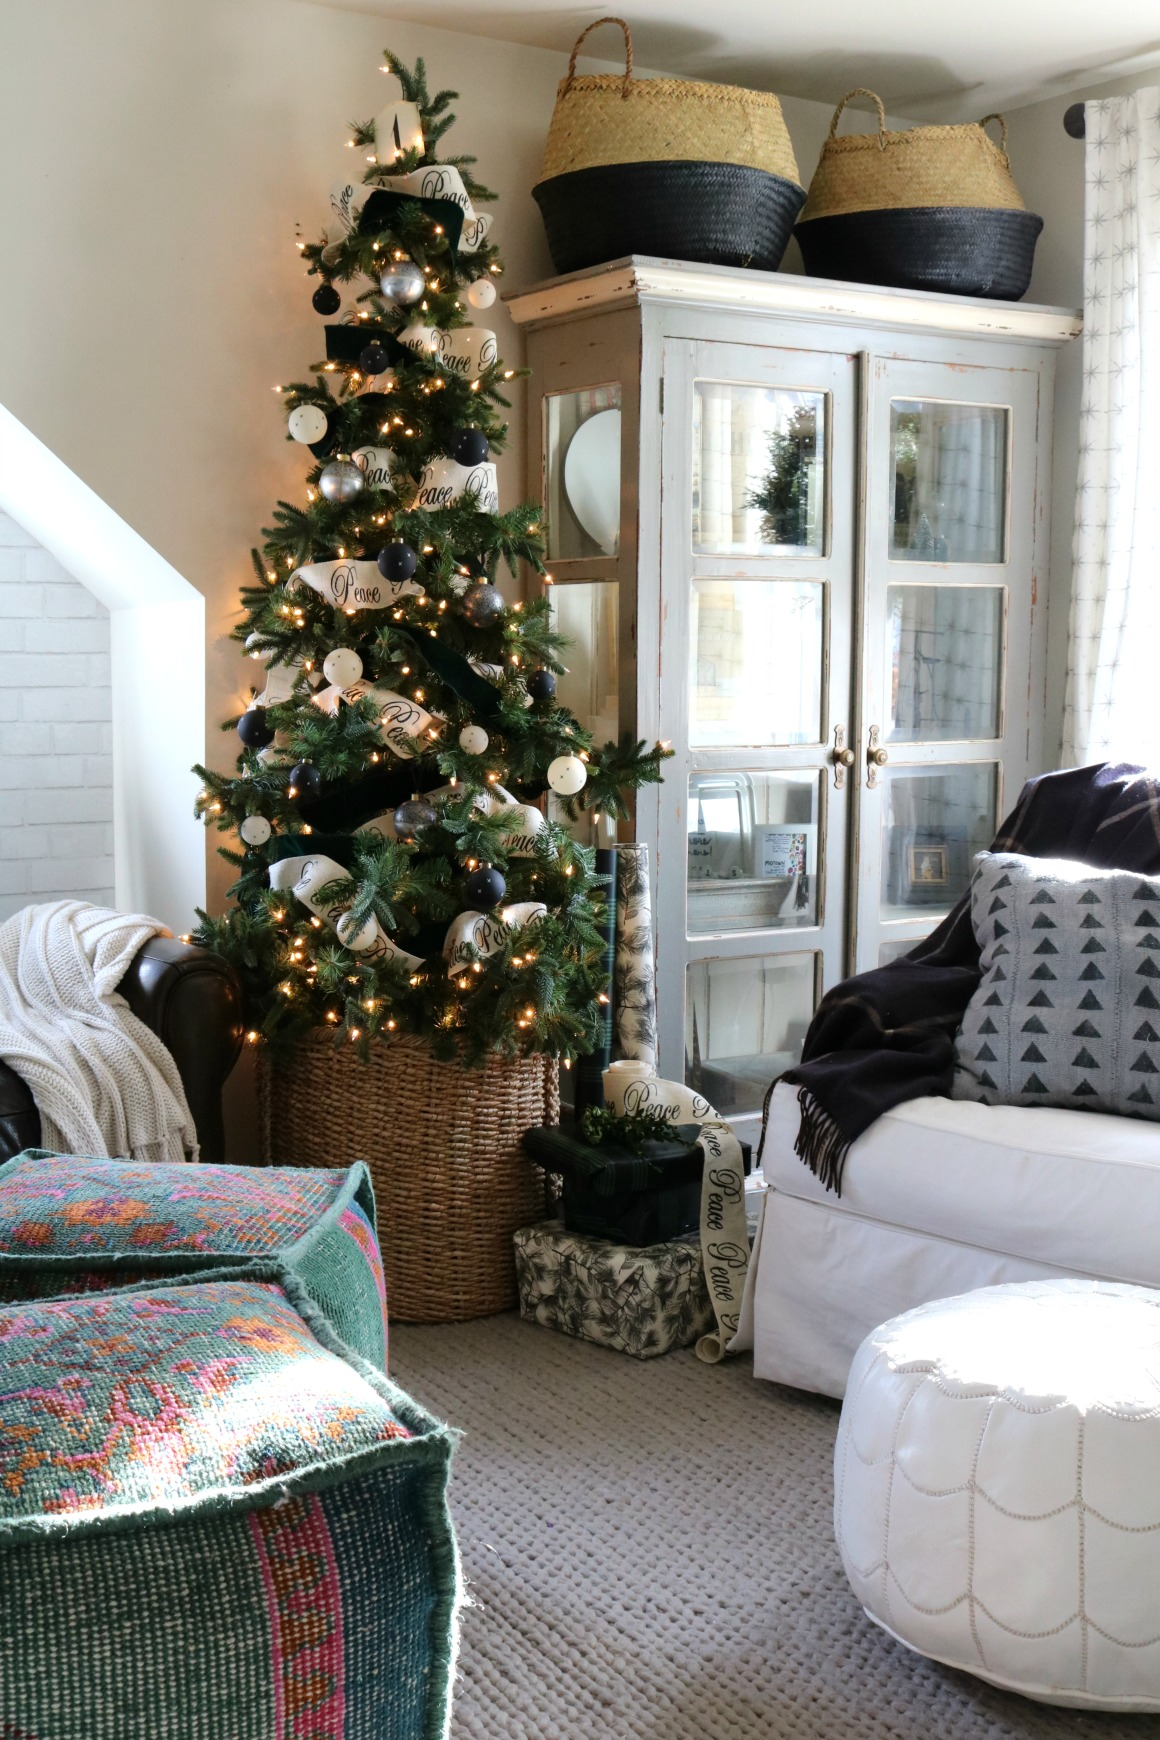 Christmas Ideas in a Small Space- Upstairs Tour - Nesting ...